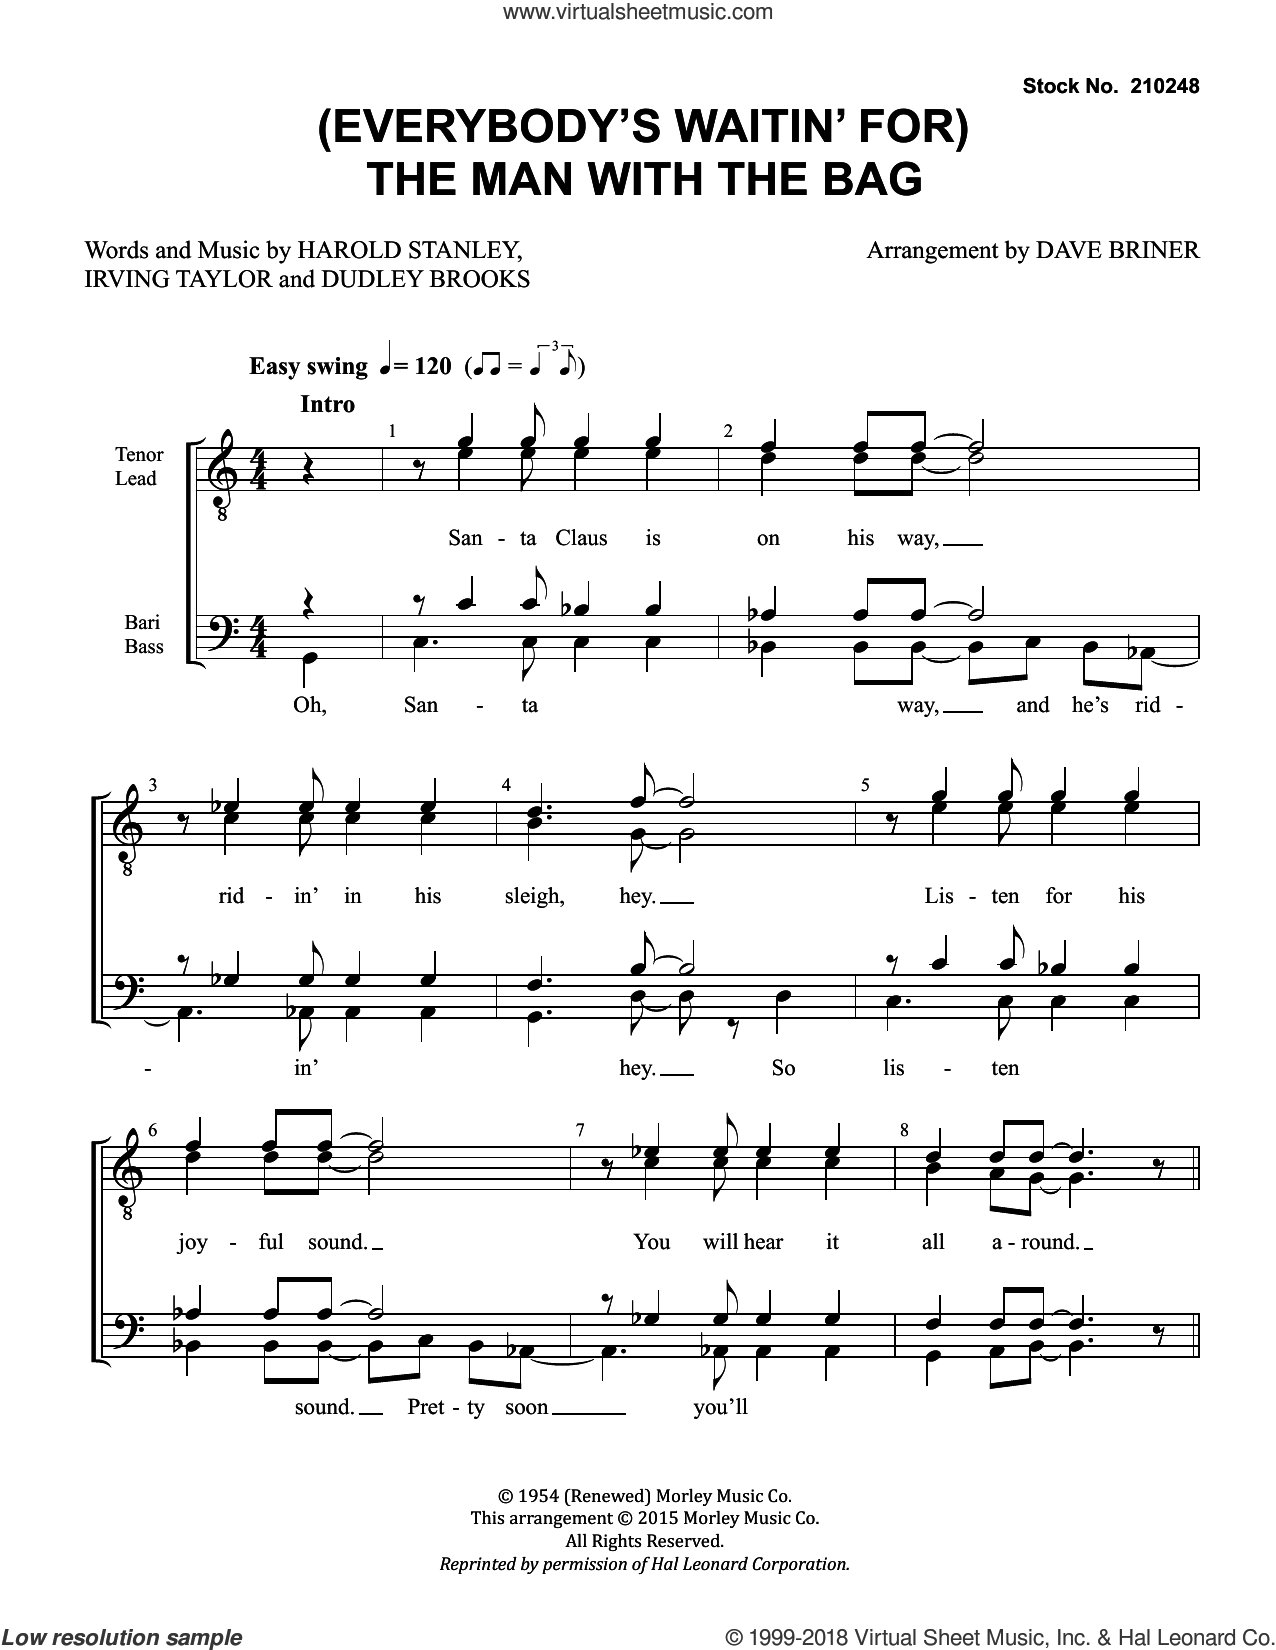 (Everybody's Waitin' for) The Man with the Bag (arr. Dave Briner) sheet music for choir (TTBB: tenor, bass) by Kay Starr, Dave Briner, Dudley Brooks, Harold Stanley and Irving Taylor, intermediate skill level